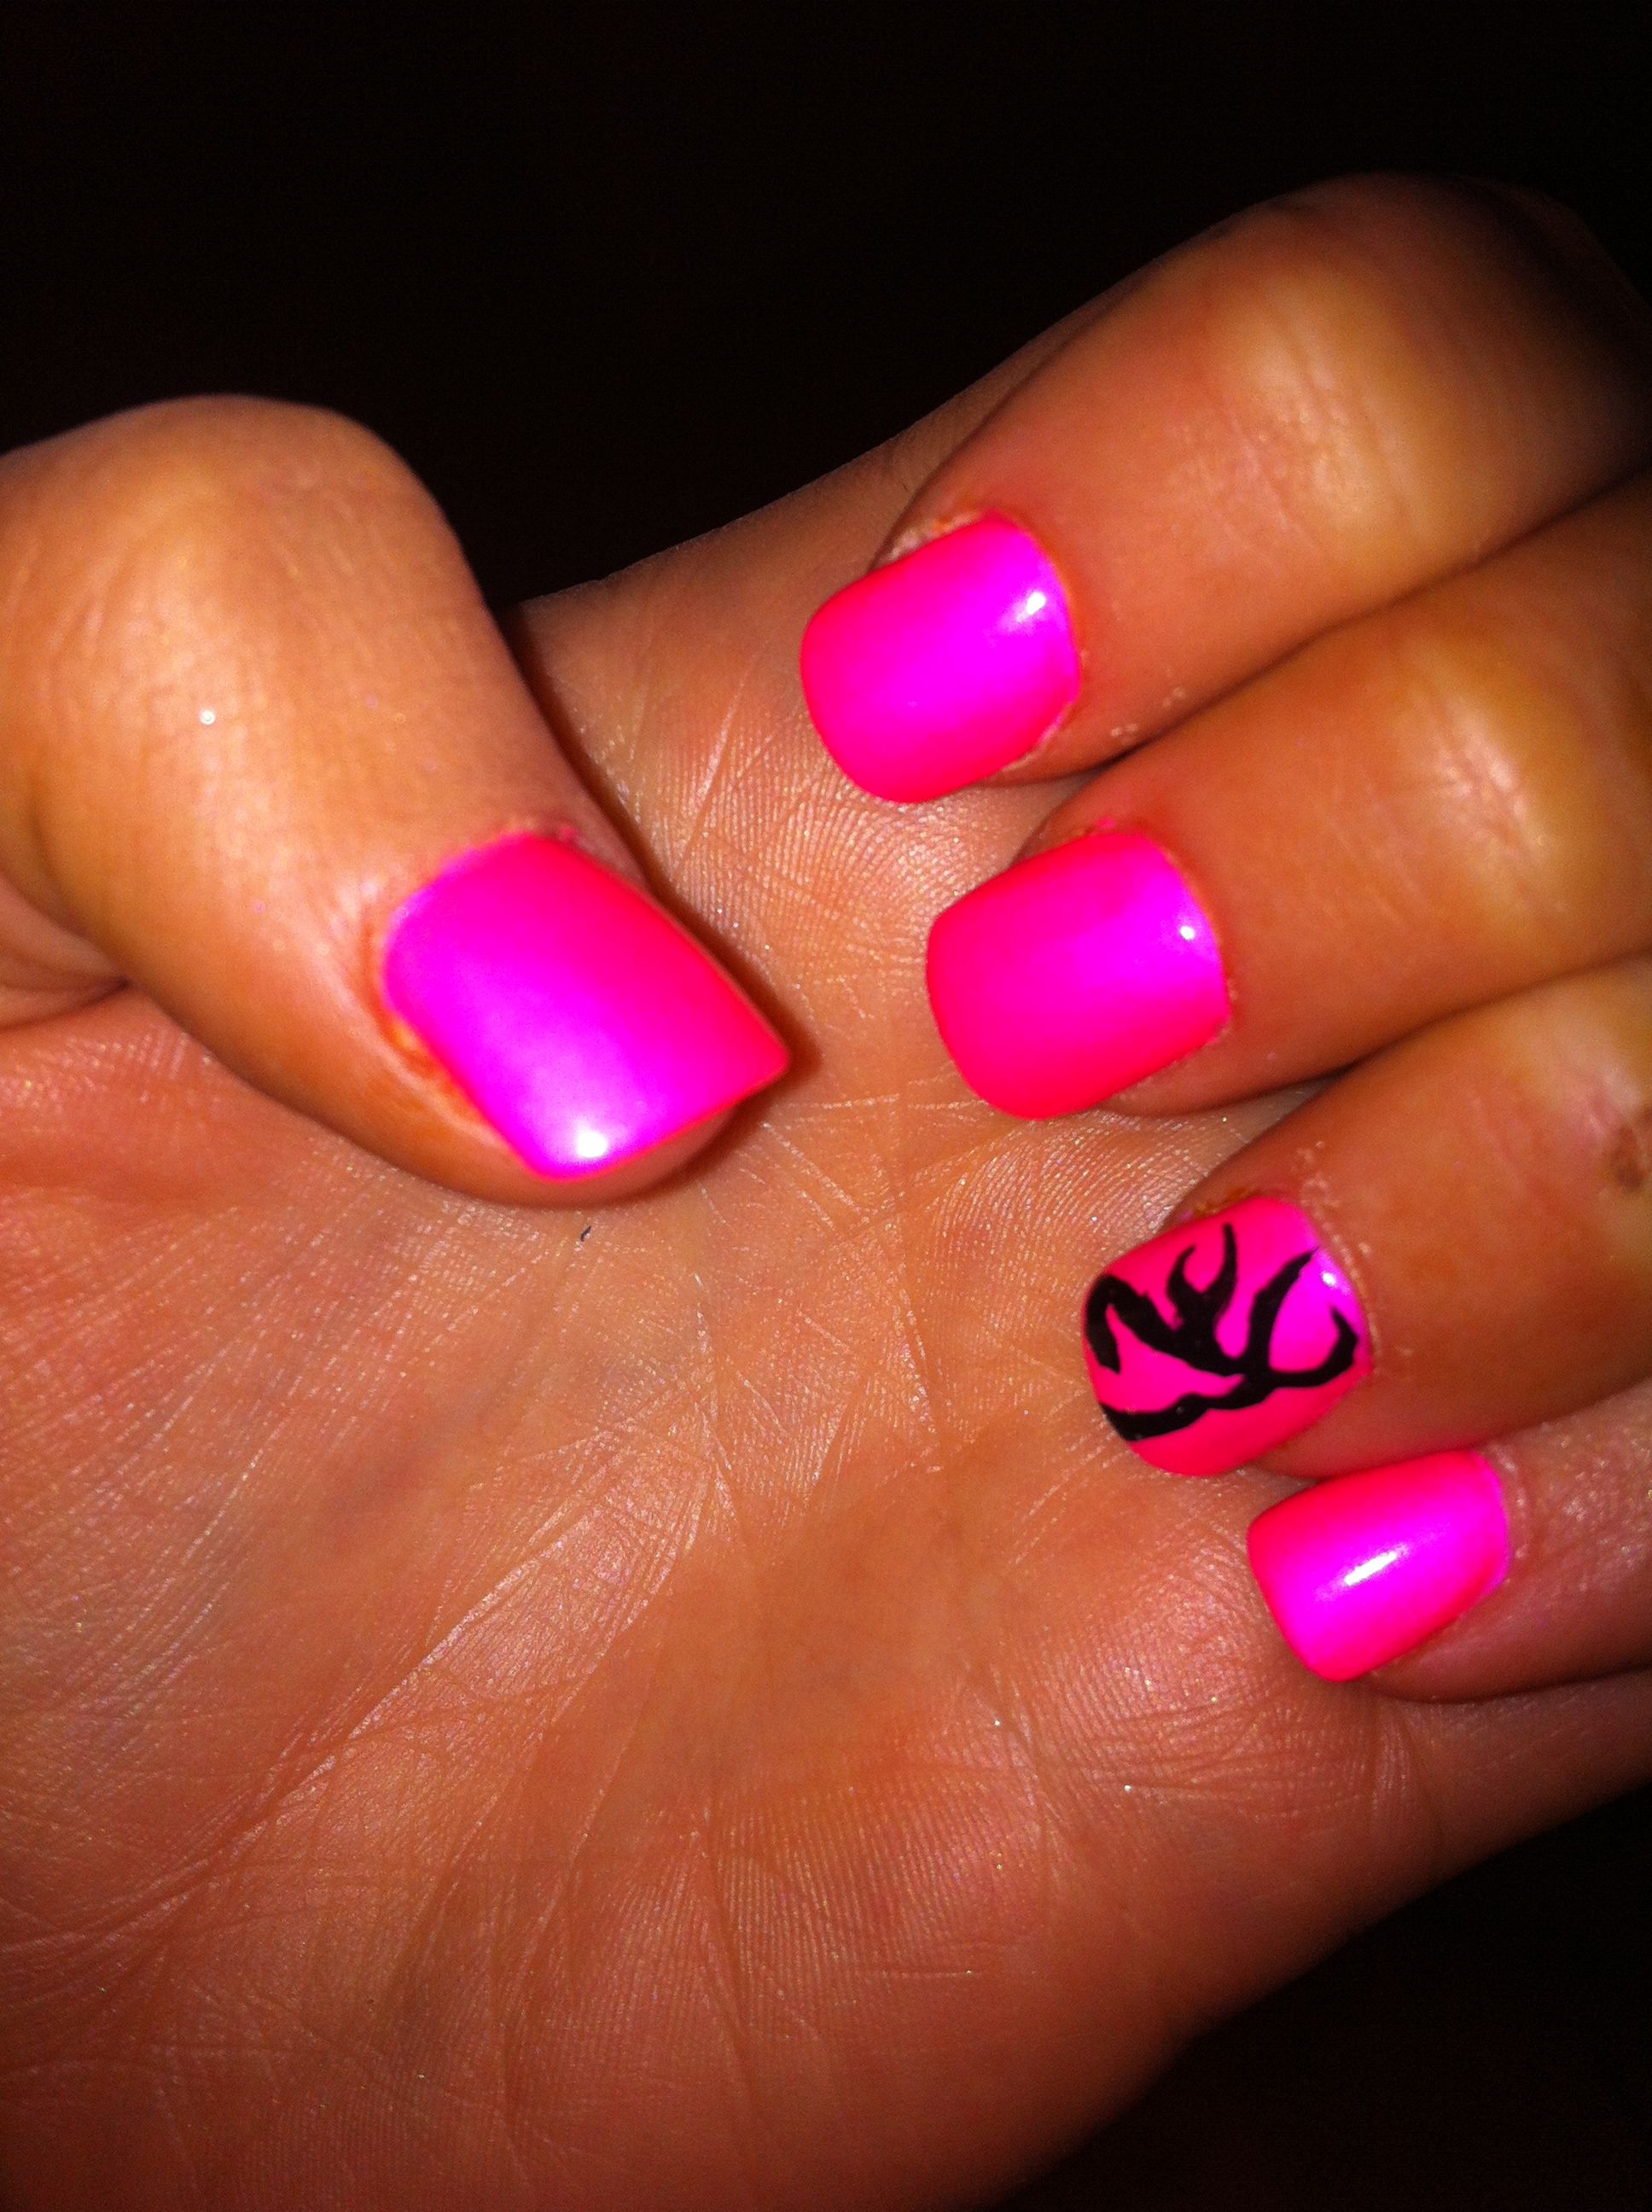 My Nails I Absolutely Love Them Nails Countrygirlnails